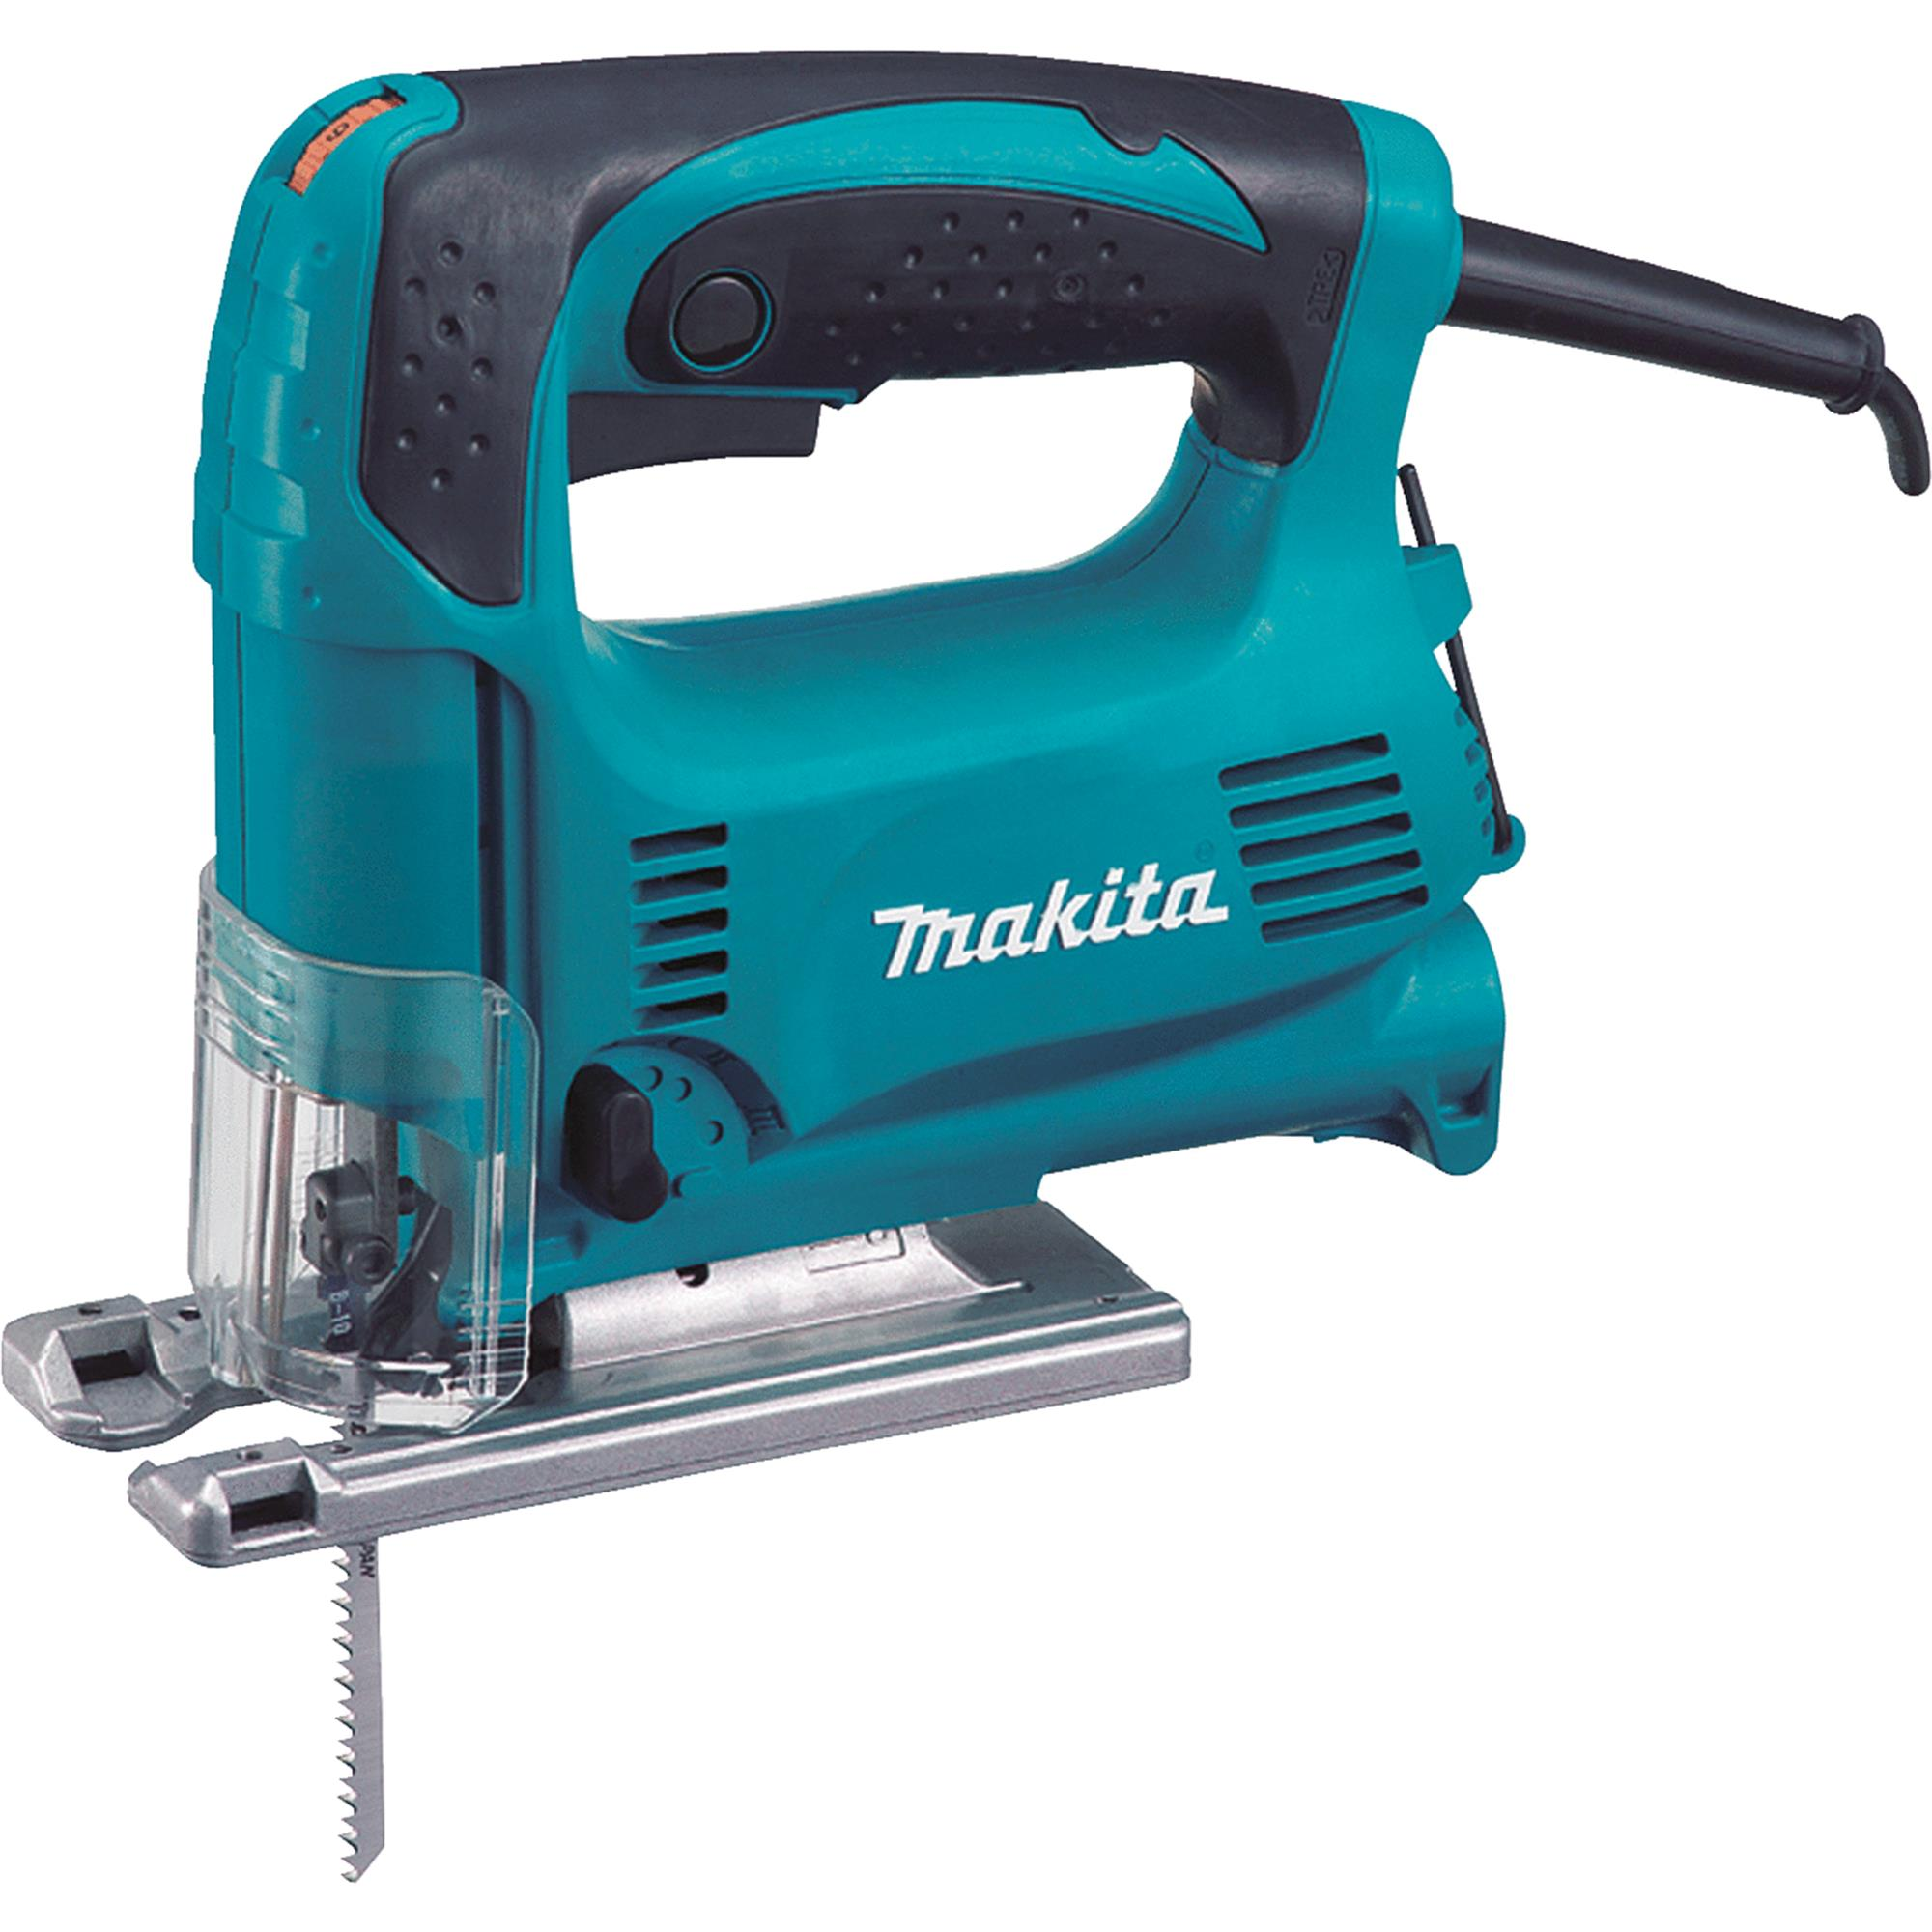 Makita 3.9A Jig Saw Kit